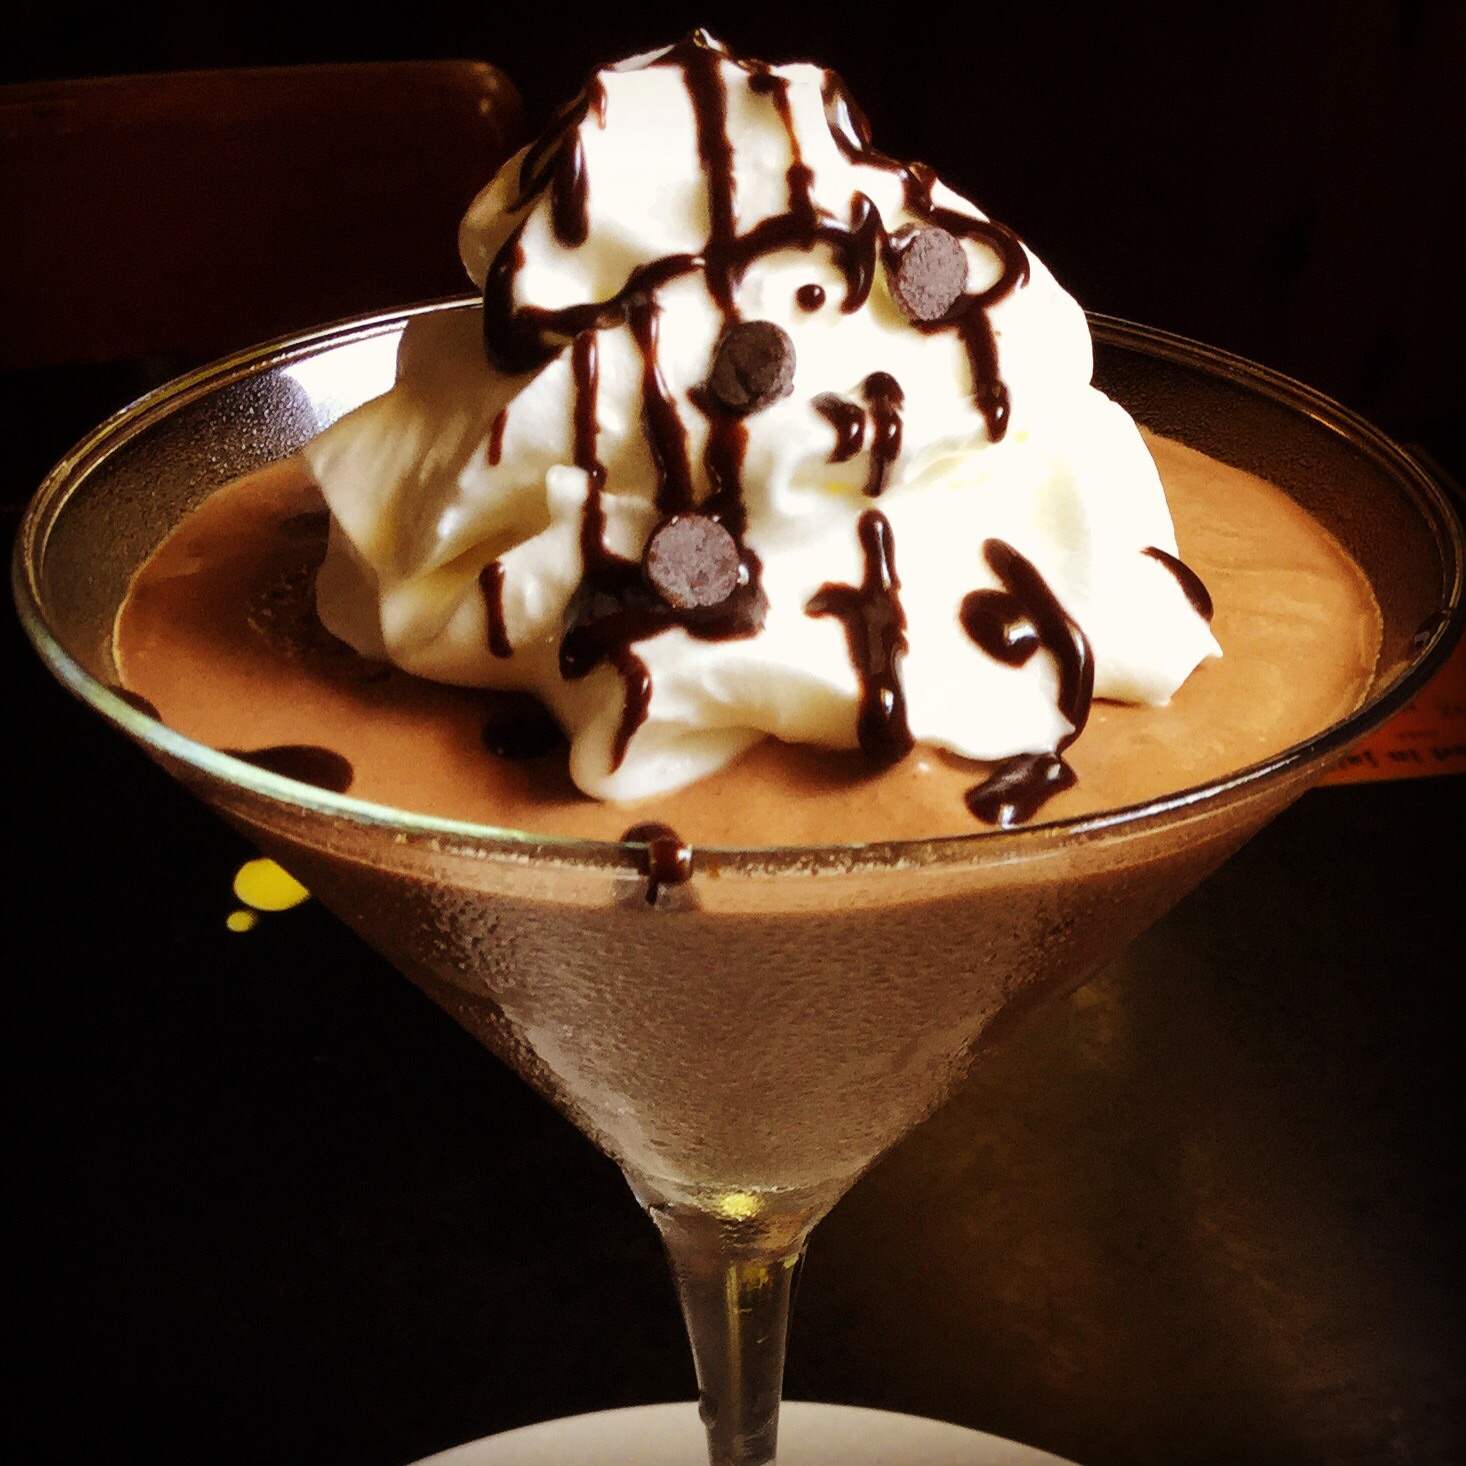 Chocolate Kahlua Mousse - Make a Plate Photo Contest